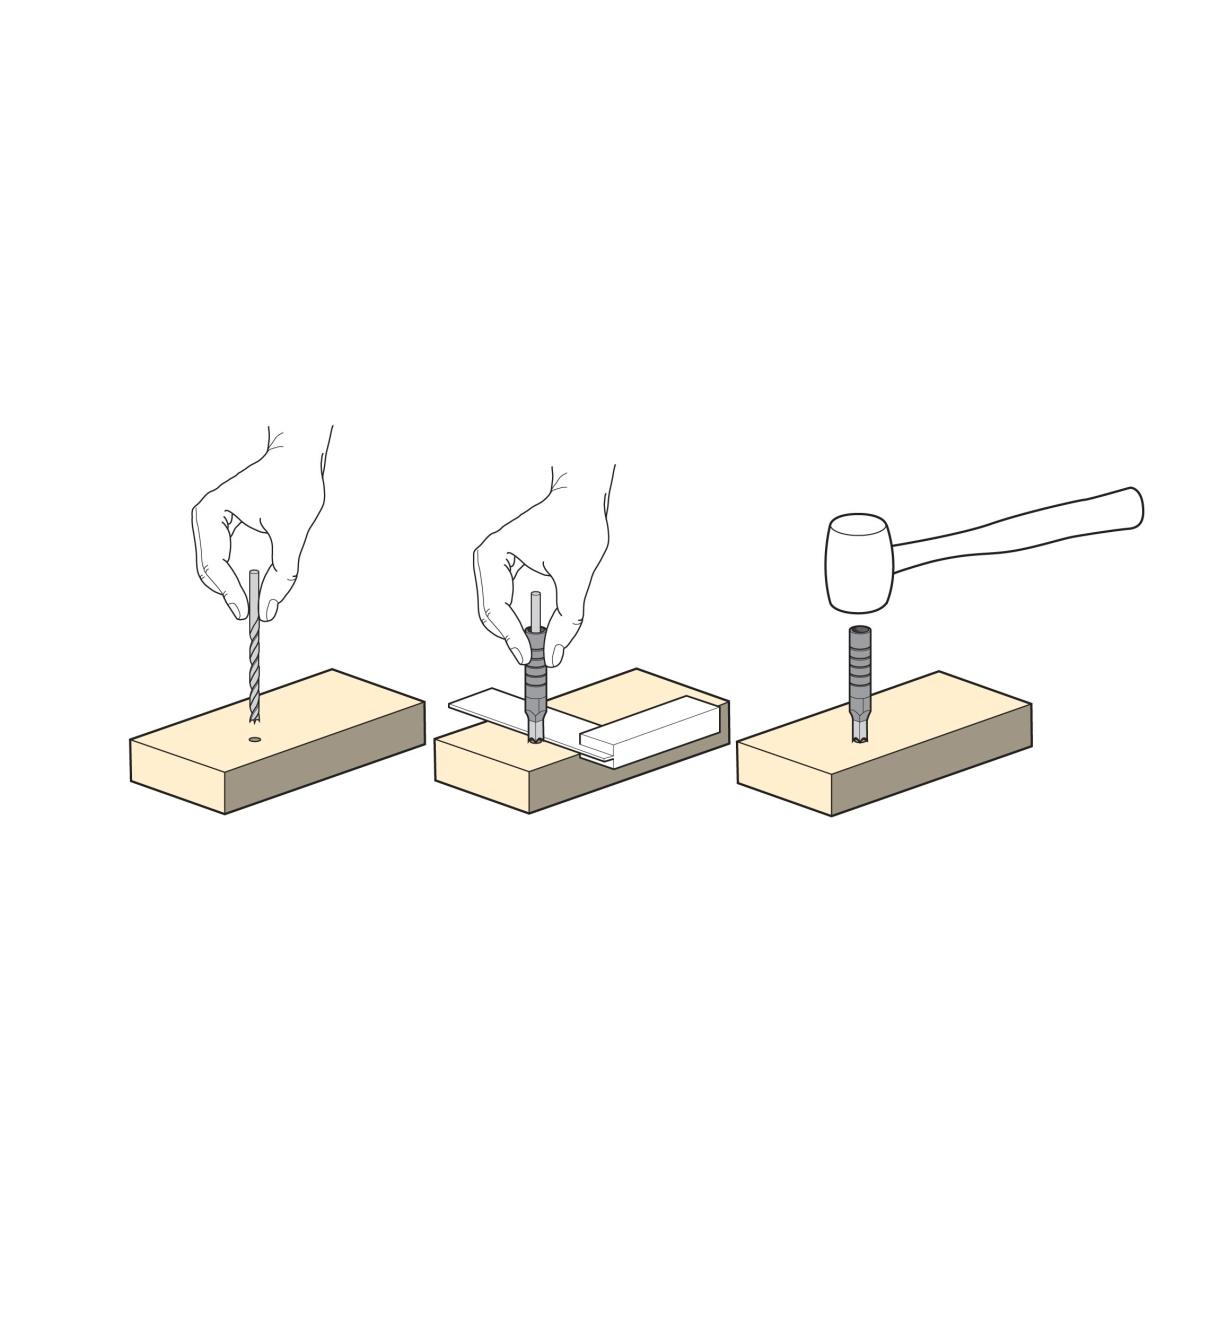 Three illustrations show how to use the square hole punches